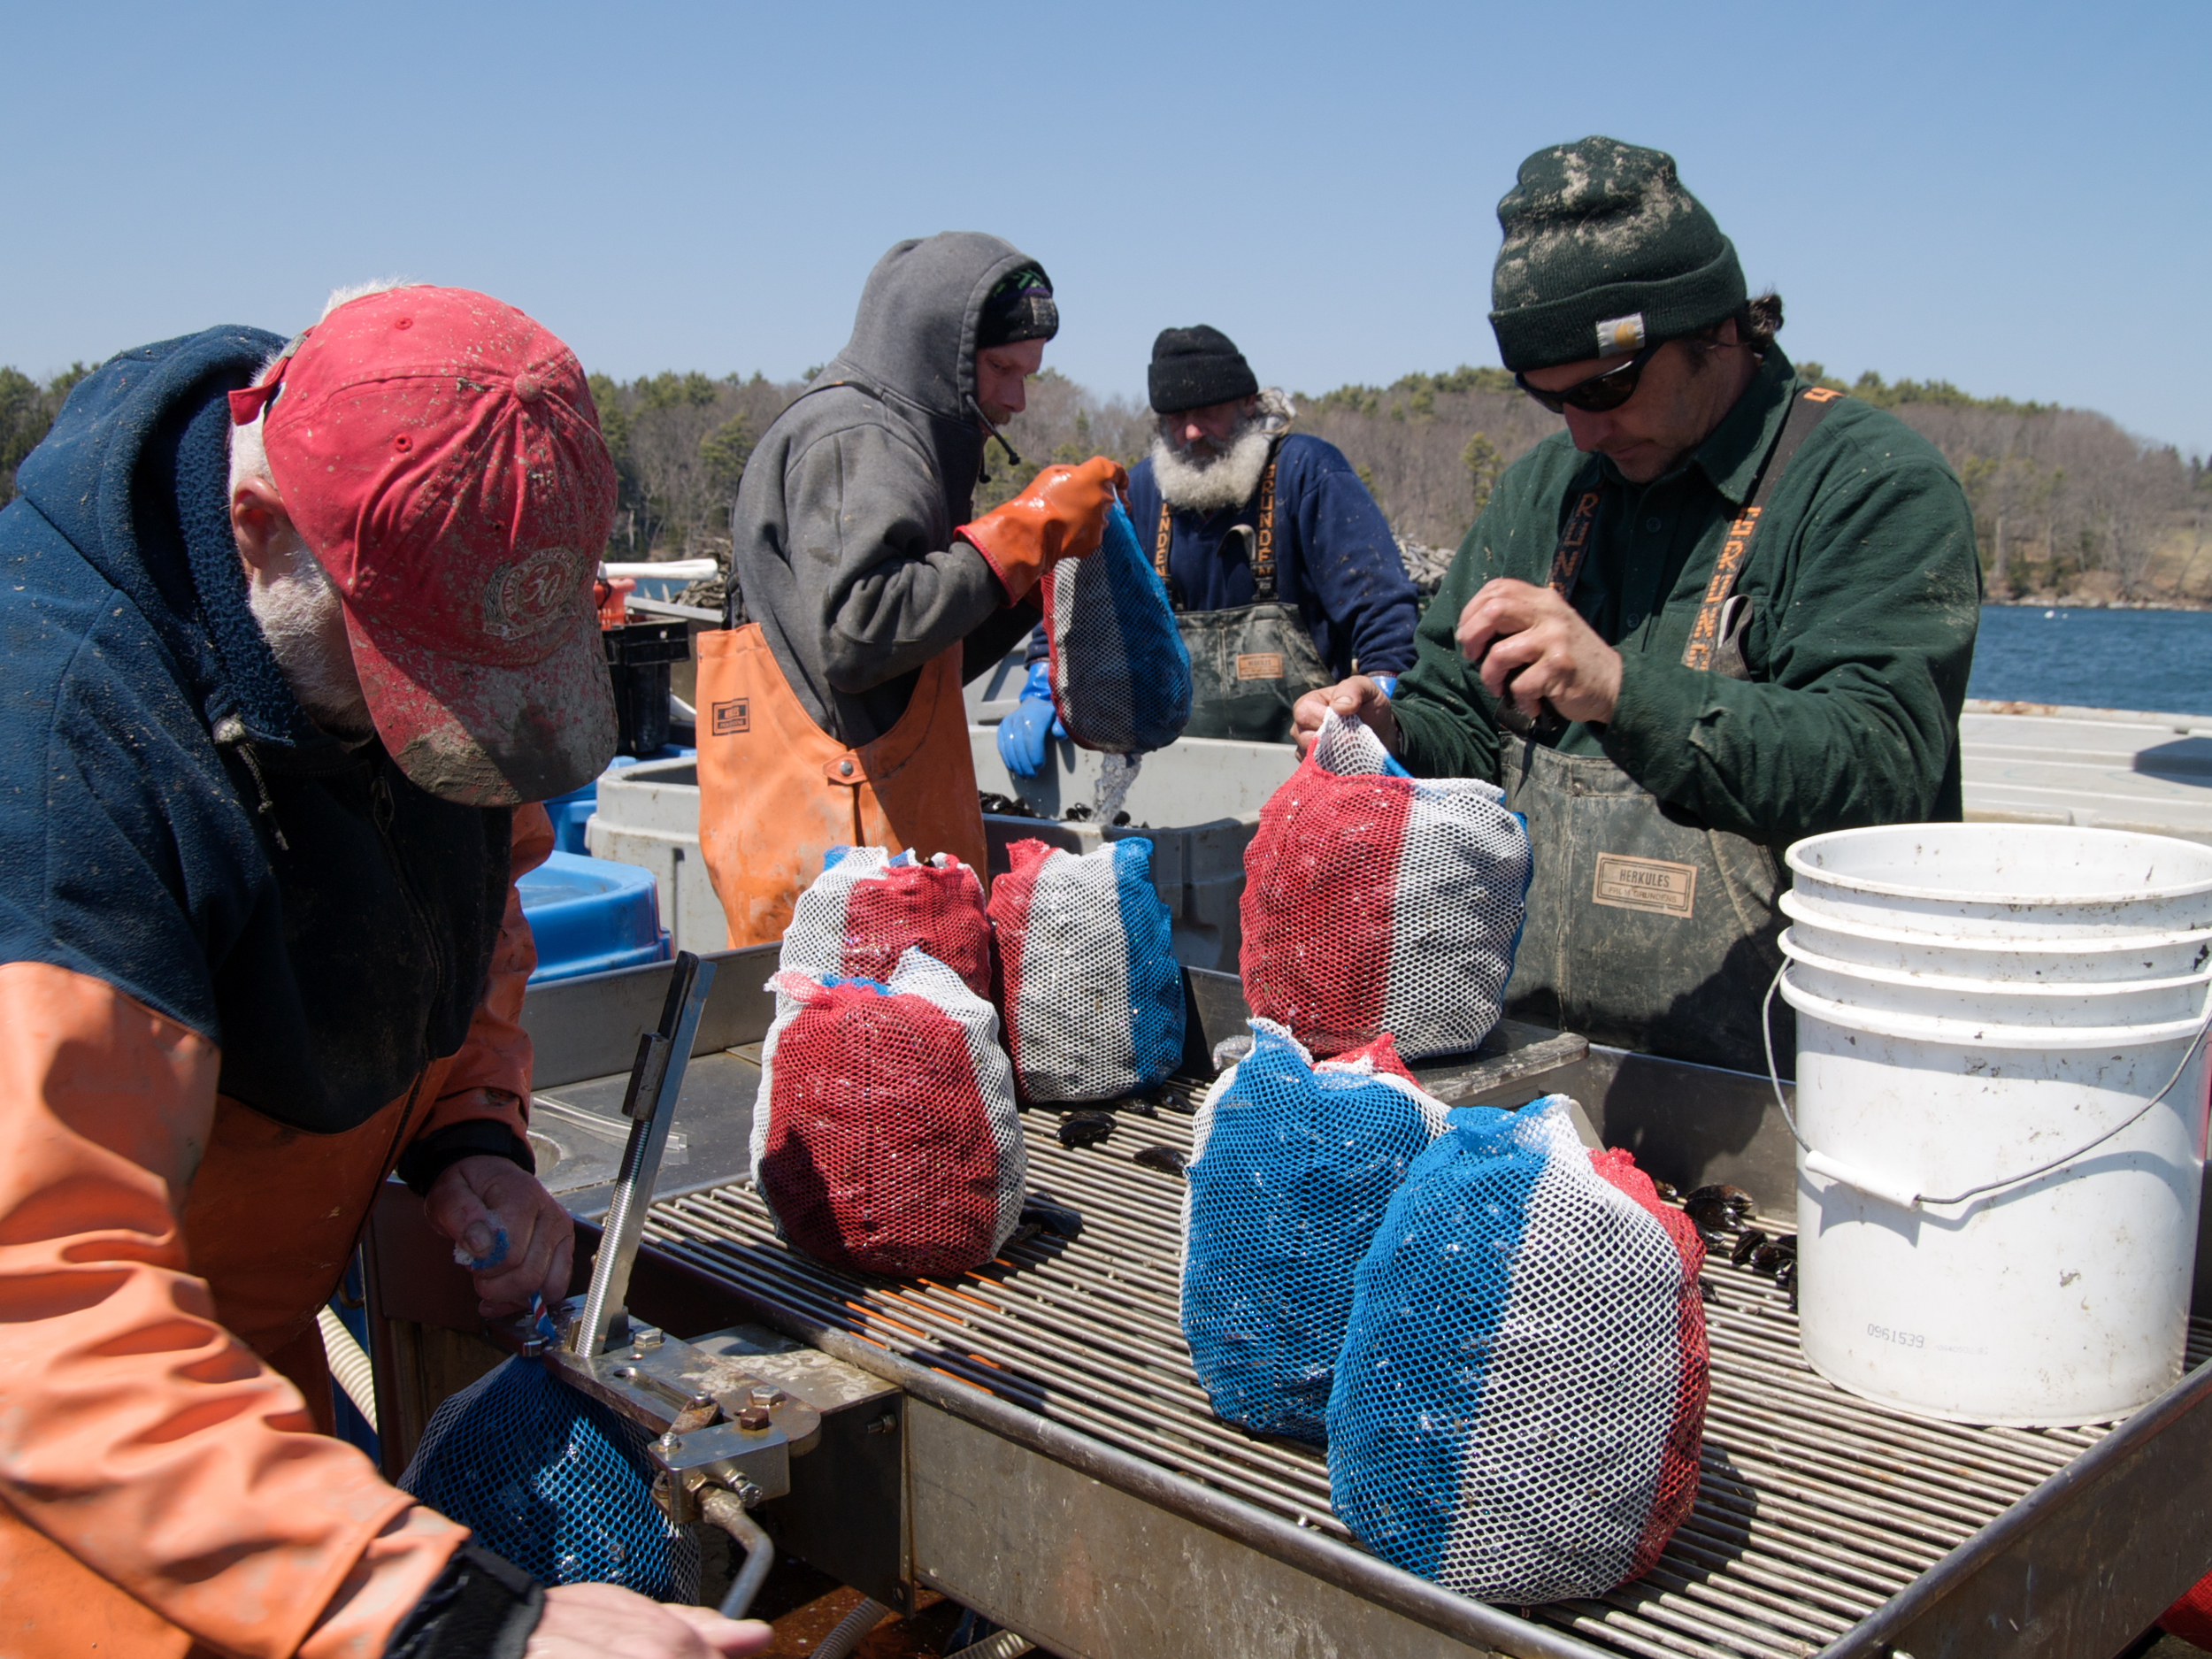 (04/25/09) Peter Fischer, Greg Thompson, Joe Larrabee and Carter Newell (from left to right) weigh mussels by hand in 10 lb bags before packing them into plastic totes and cover- ing them with ice. Red white and blue bags show that the mussels are American and not Canadian.